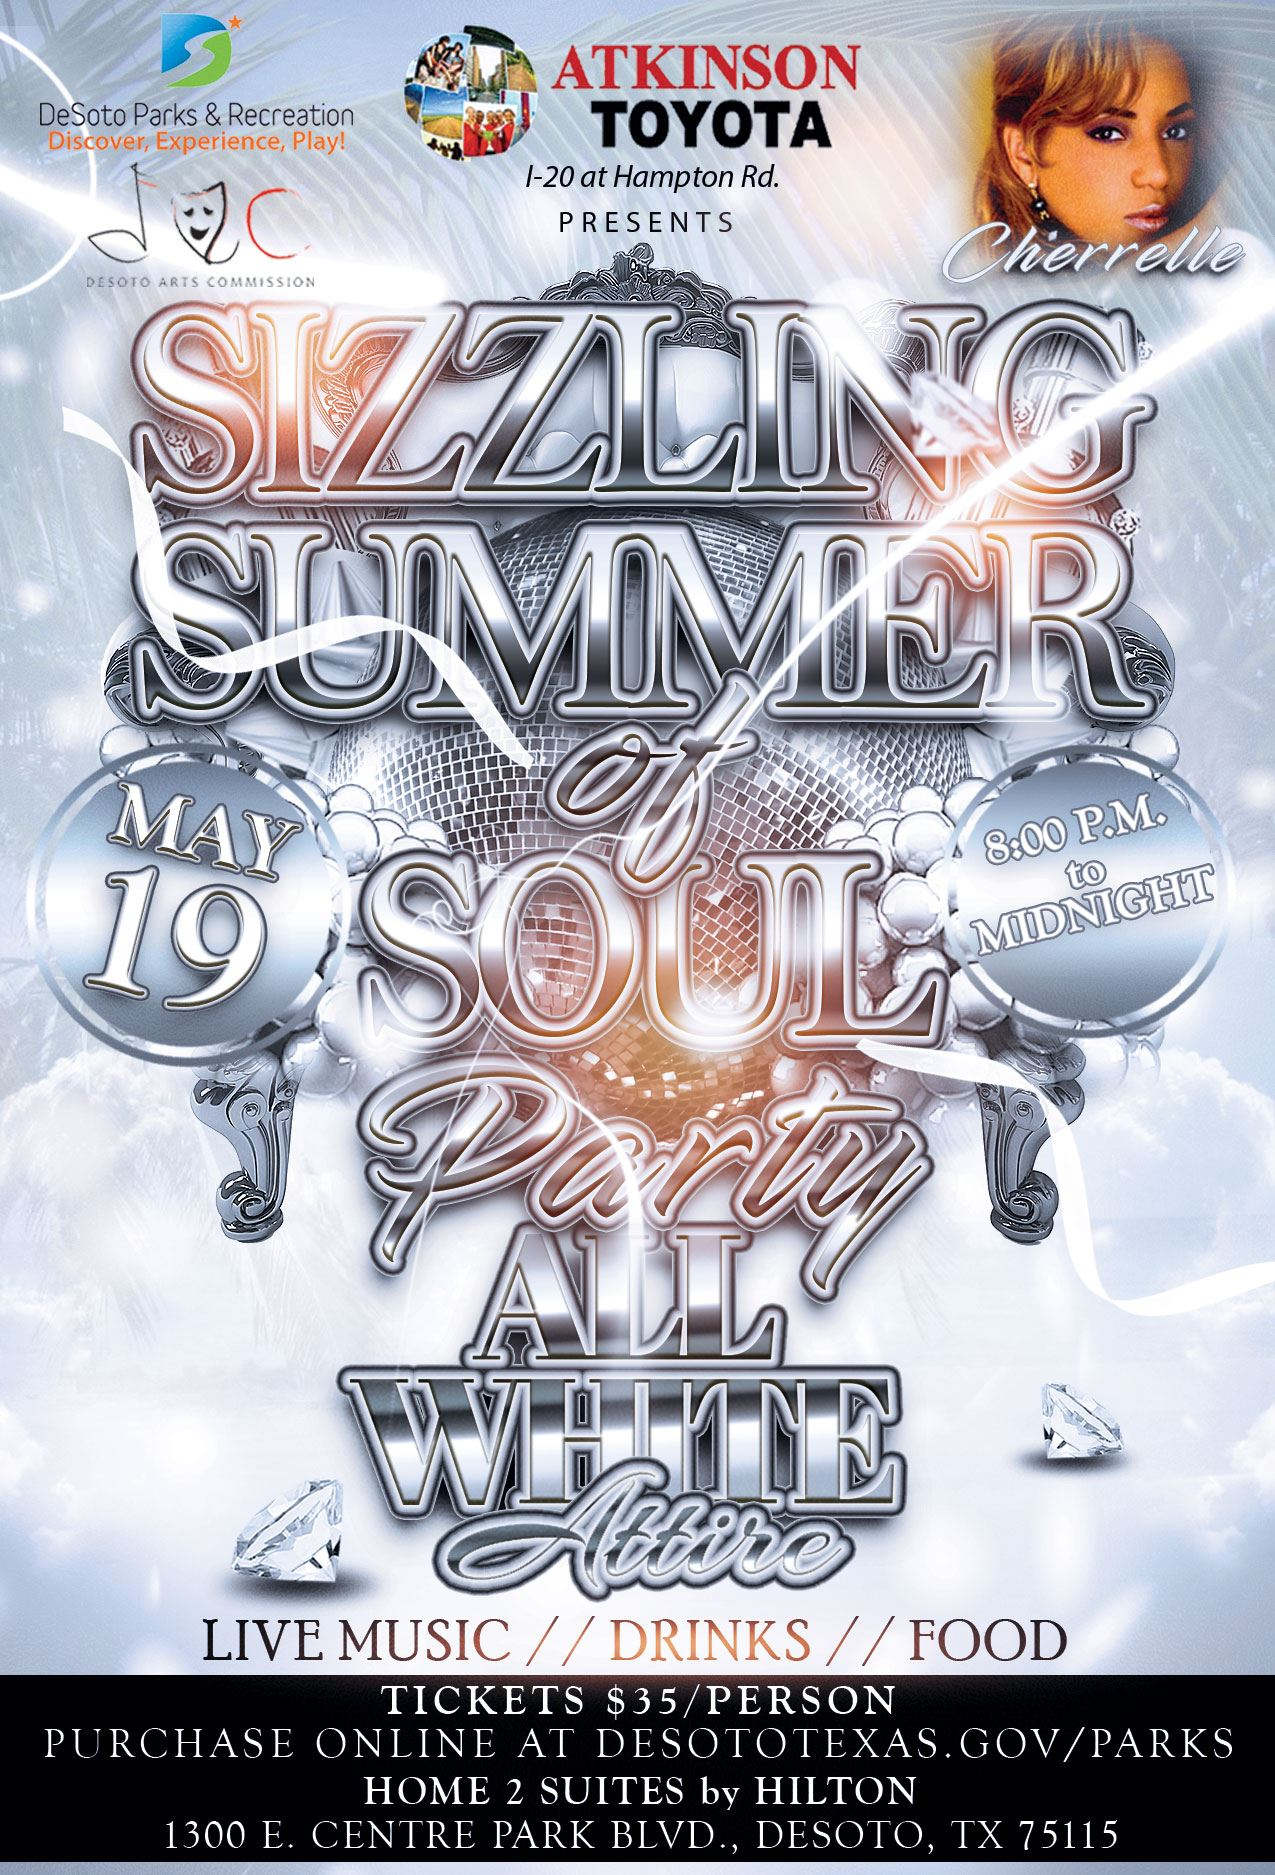 Sizzling_Summer_of_Soul_2018